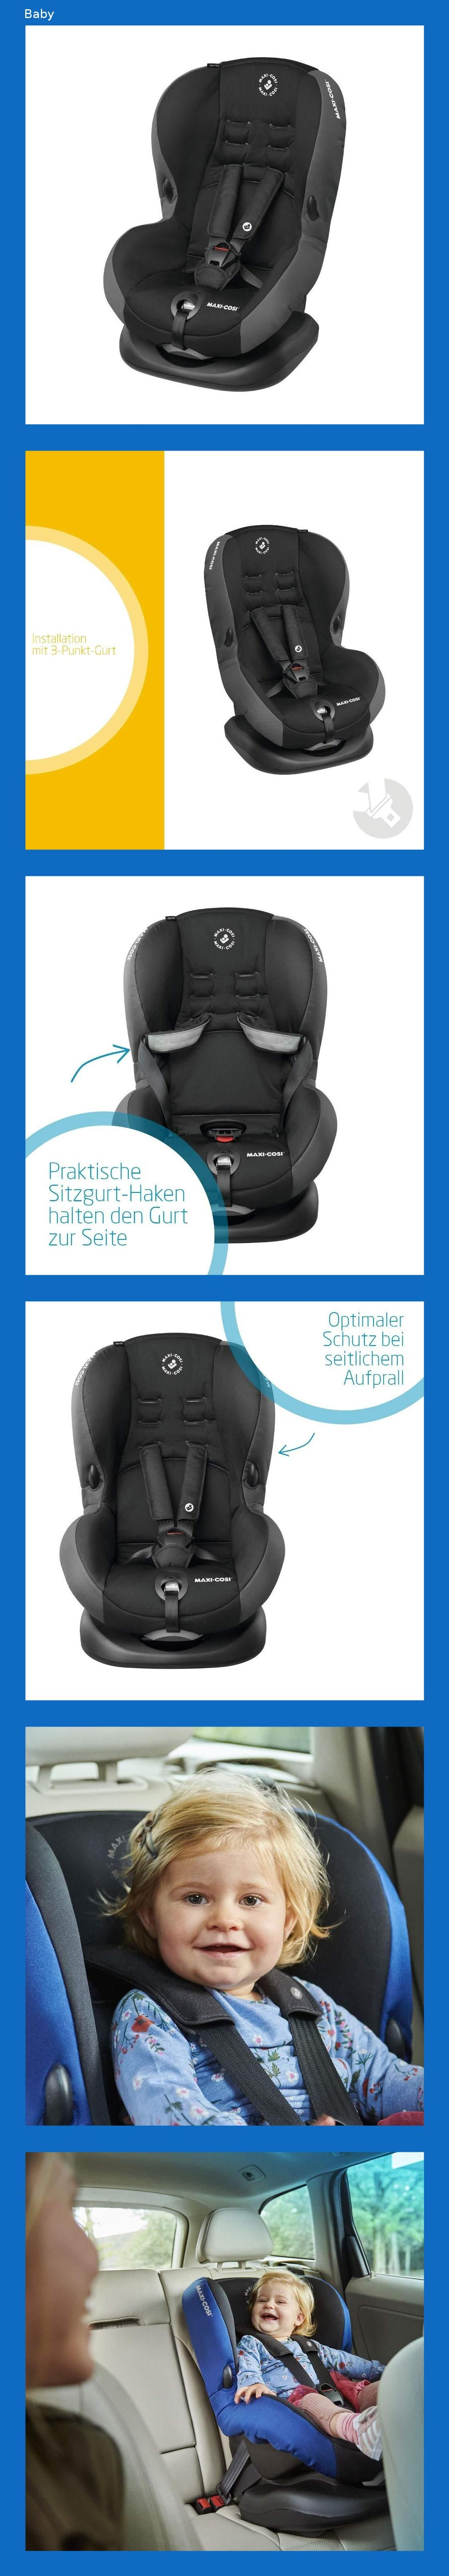 Baby Max Kindersitz Anleitung Maxi Cosi Priori Sps Plus Kindersitz Optimalen